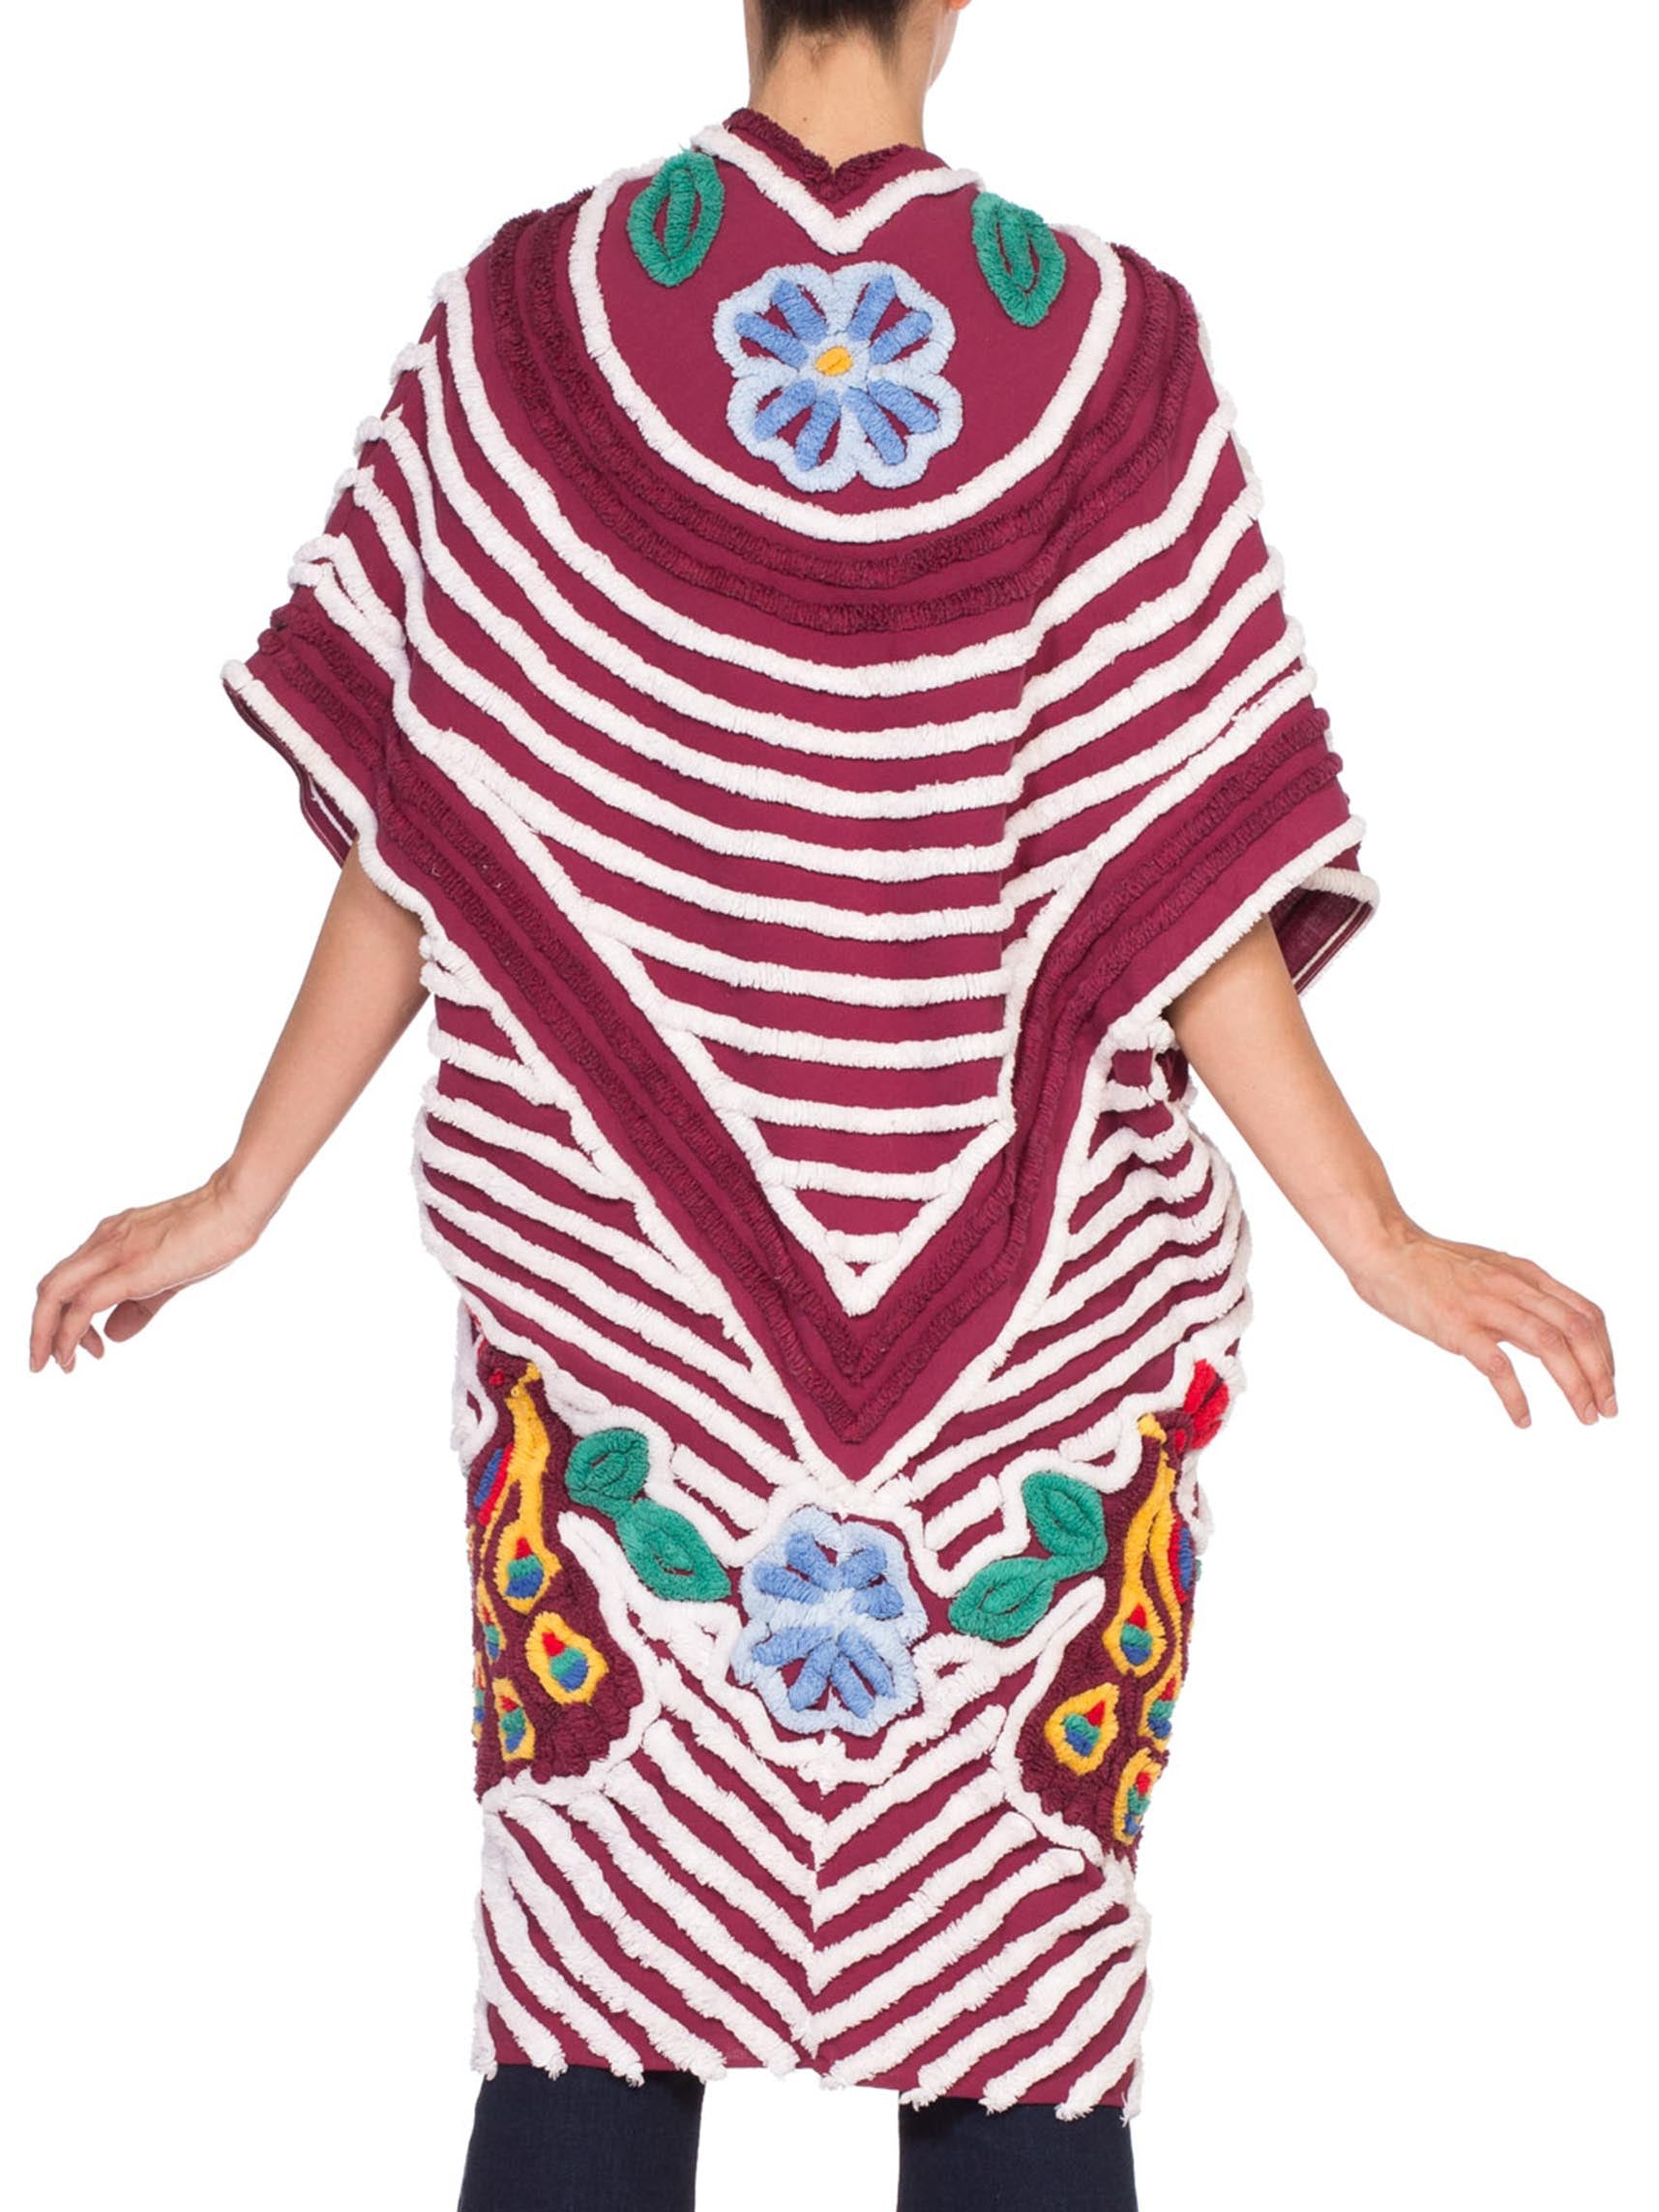 Morphew Collection Maroon & White Cotton Chenille Beach Coat Cocoon With Little Peacocks